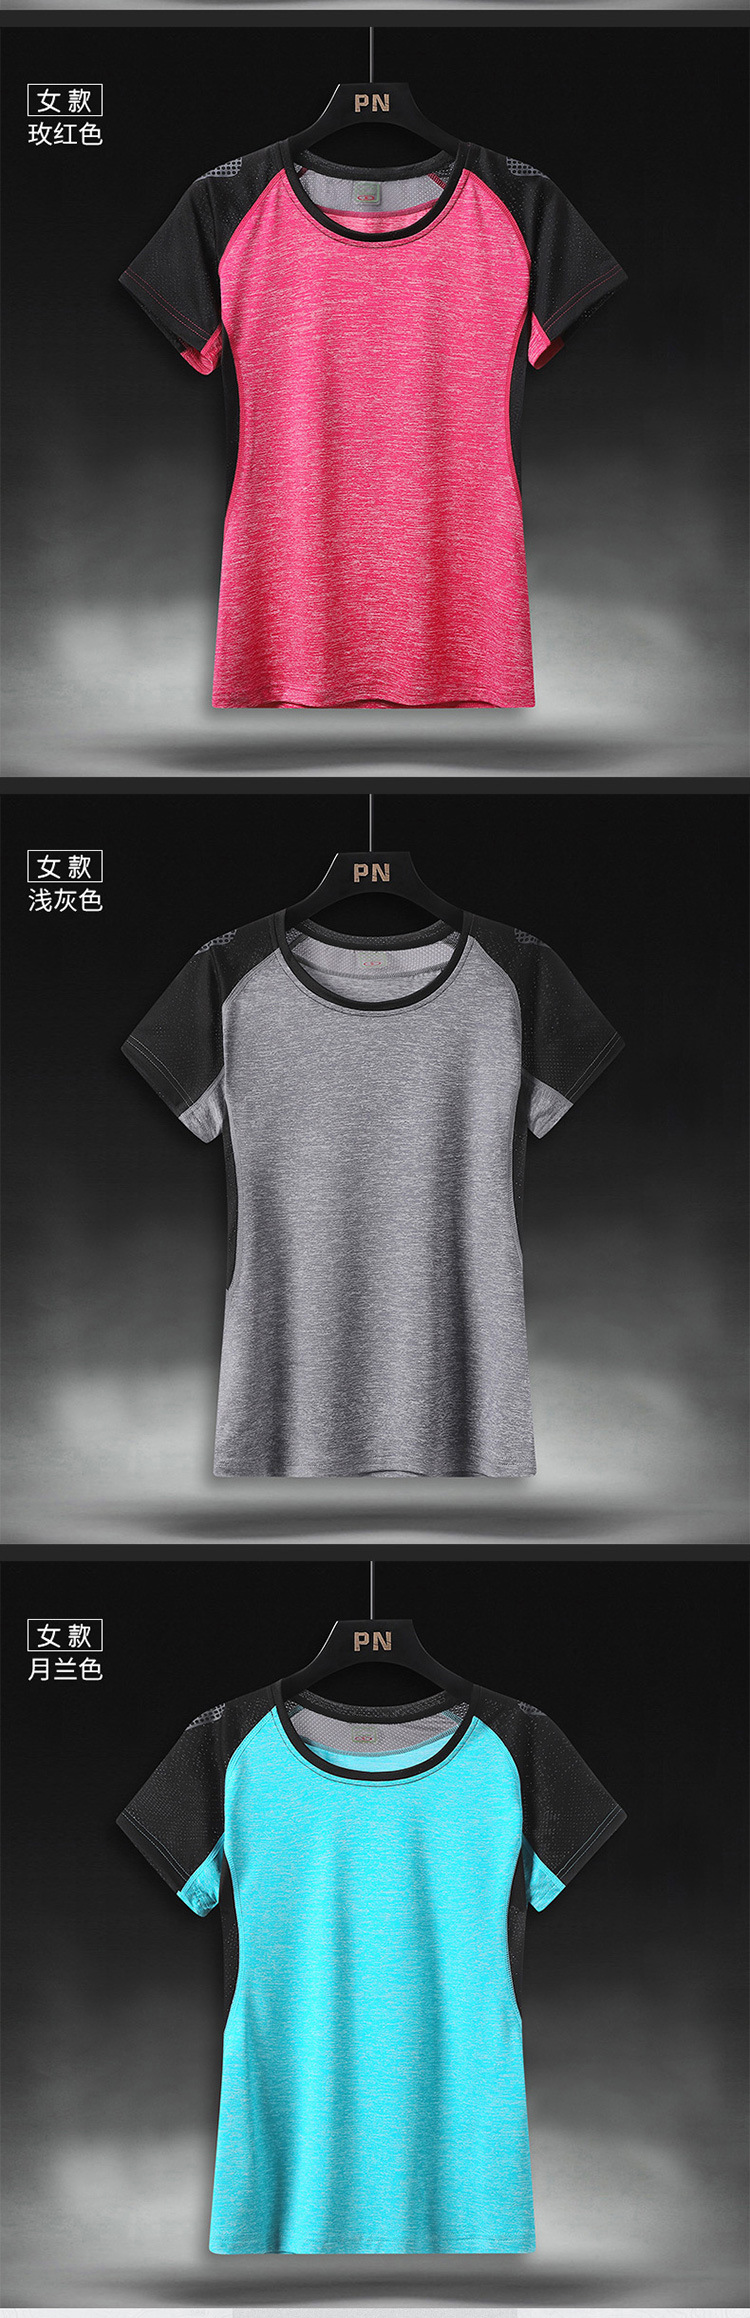 2020 design  couple  t shirt for  men and women summer sports running dry fit moisture wicking Cationic Fabric spandex tshirt